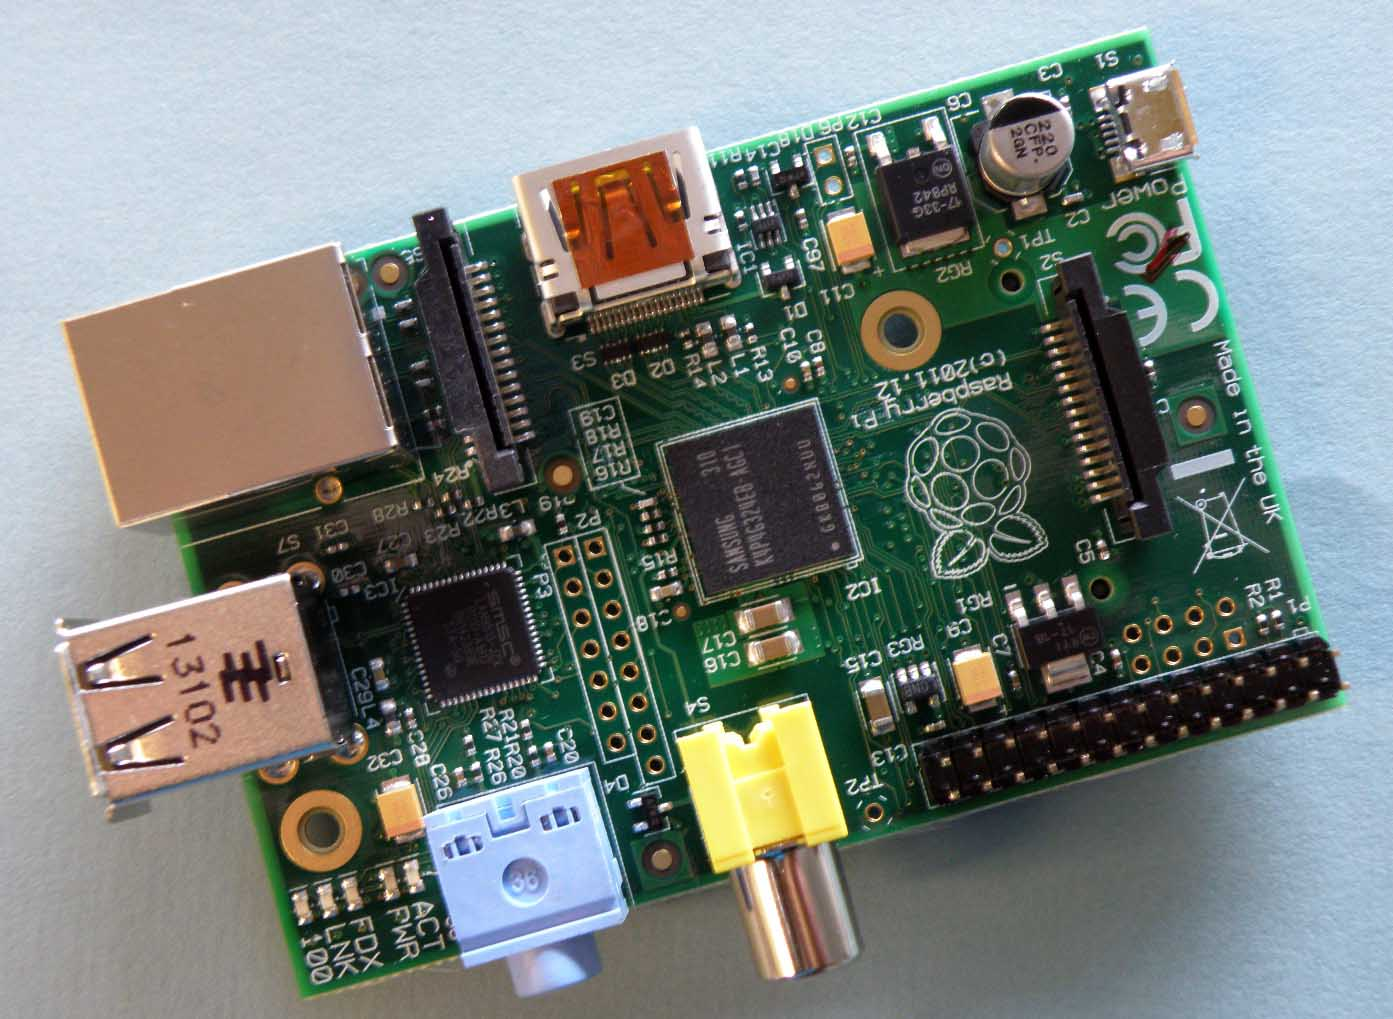 We now have a Raspberry Pi, the prize from Hack Day. We welcome suggestions for archival use.